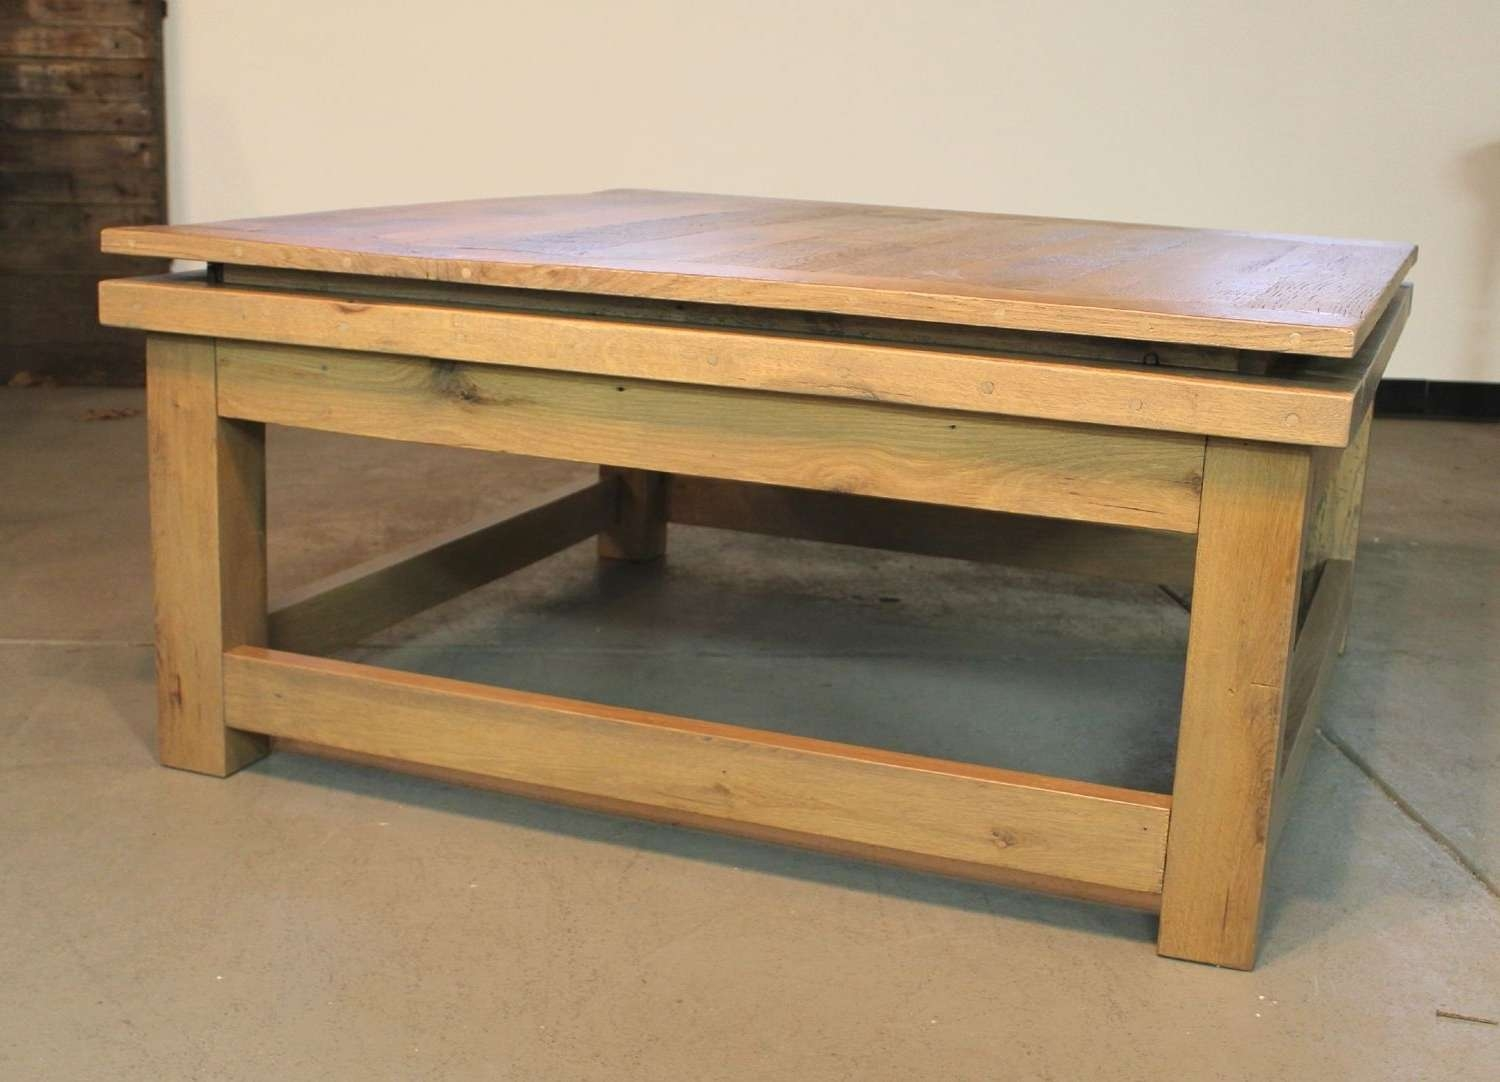 Hand Made Custom Square Oak Coffee Table From Reclaimed Oak In Well Known Reclaimed Oak Coffee Tables (Gallery 3 of 20)